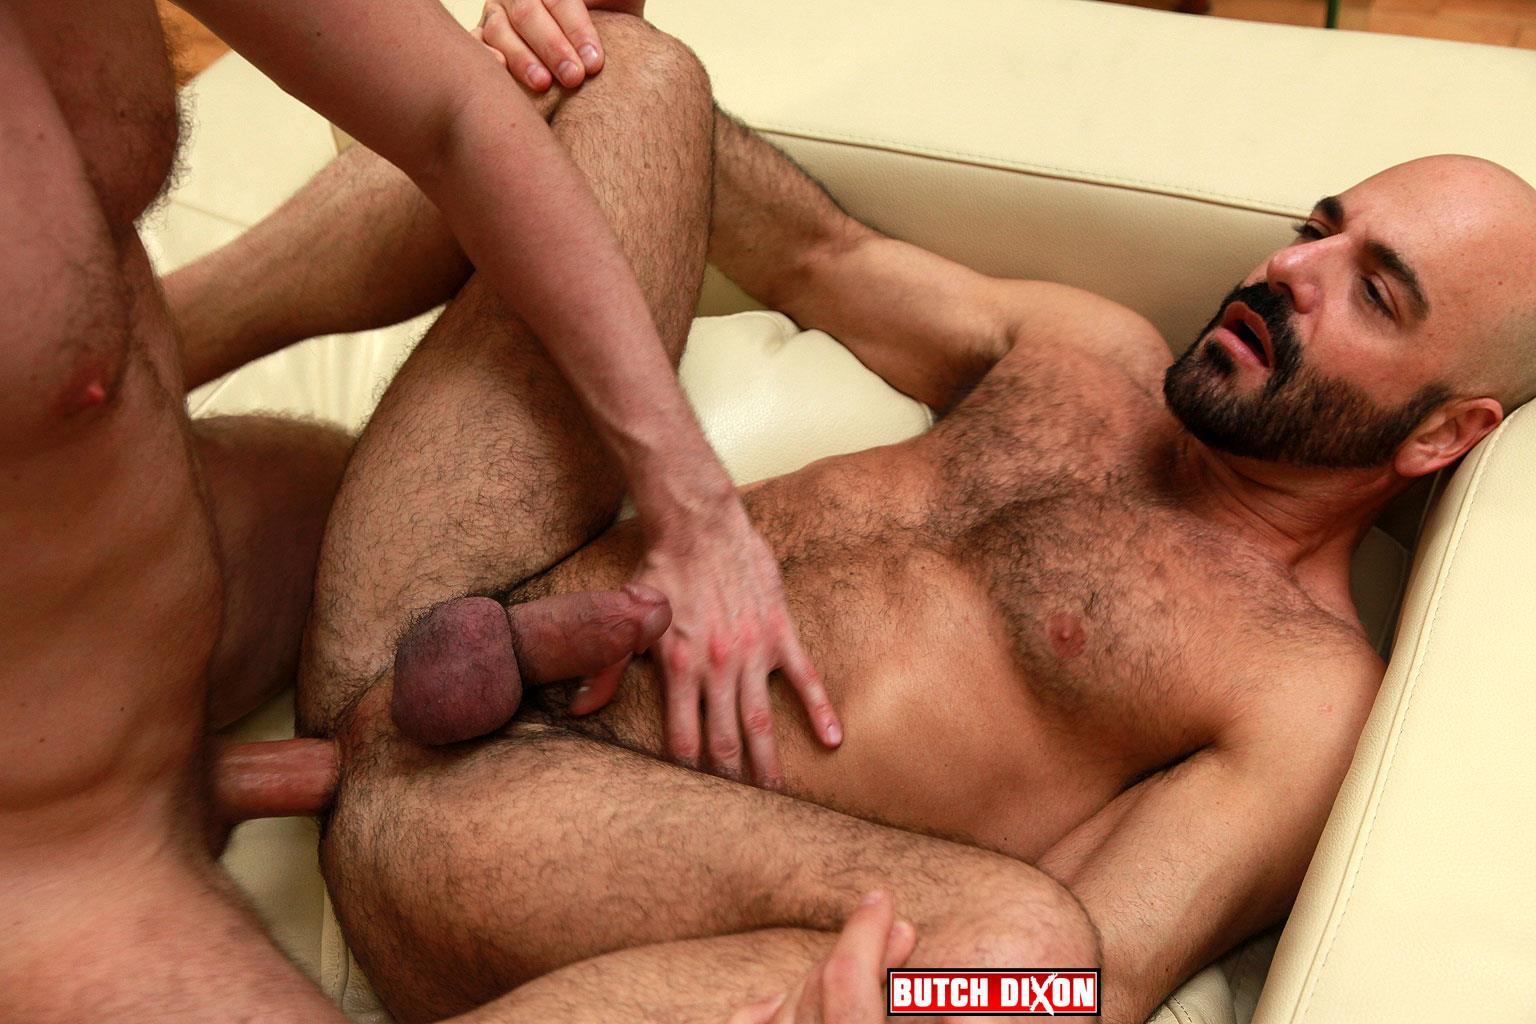 Butch Dixon Adam Russo and Adam Dacre Getting Fucked By A Big Uncut Cock Amateur Gay Porn 06 Adam Russo Getting A Big Bareback Uncut Cock Up His Hairy Ass